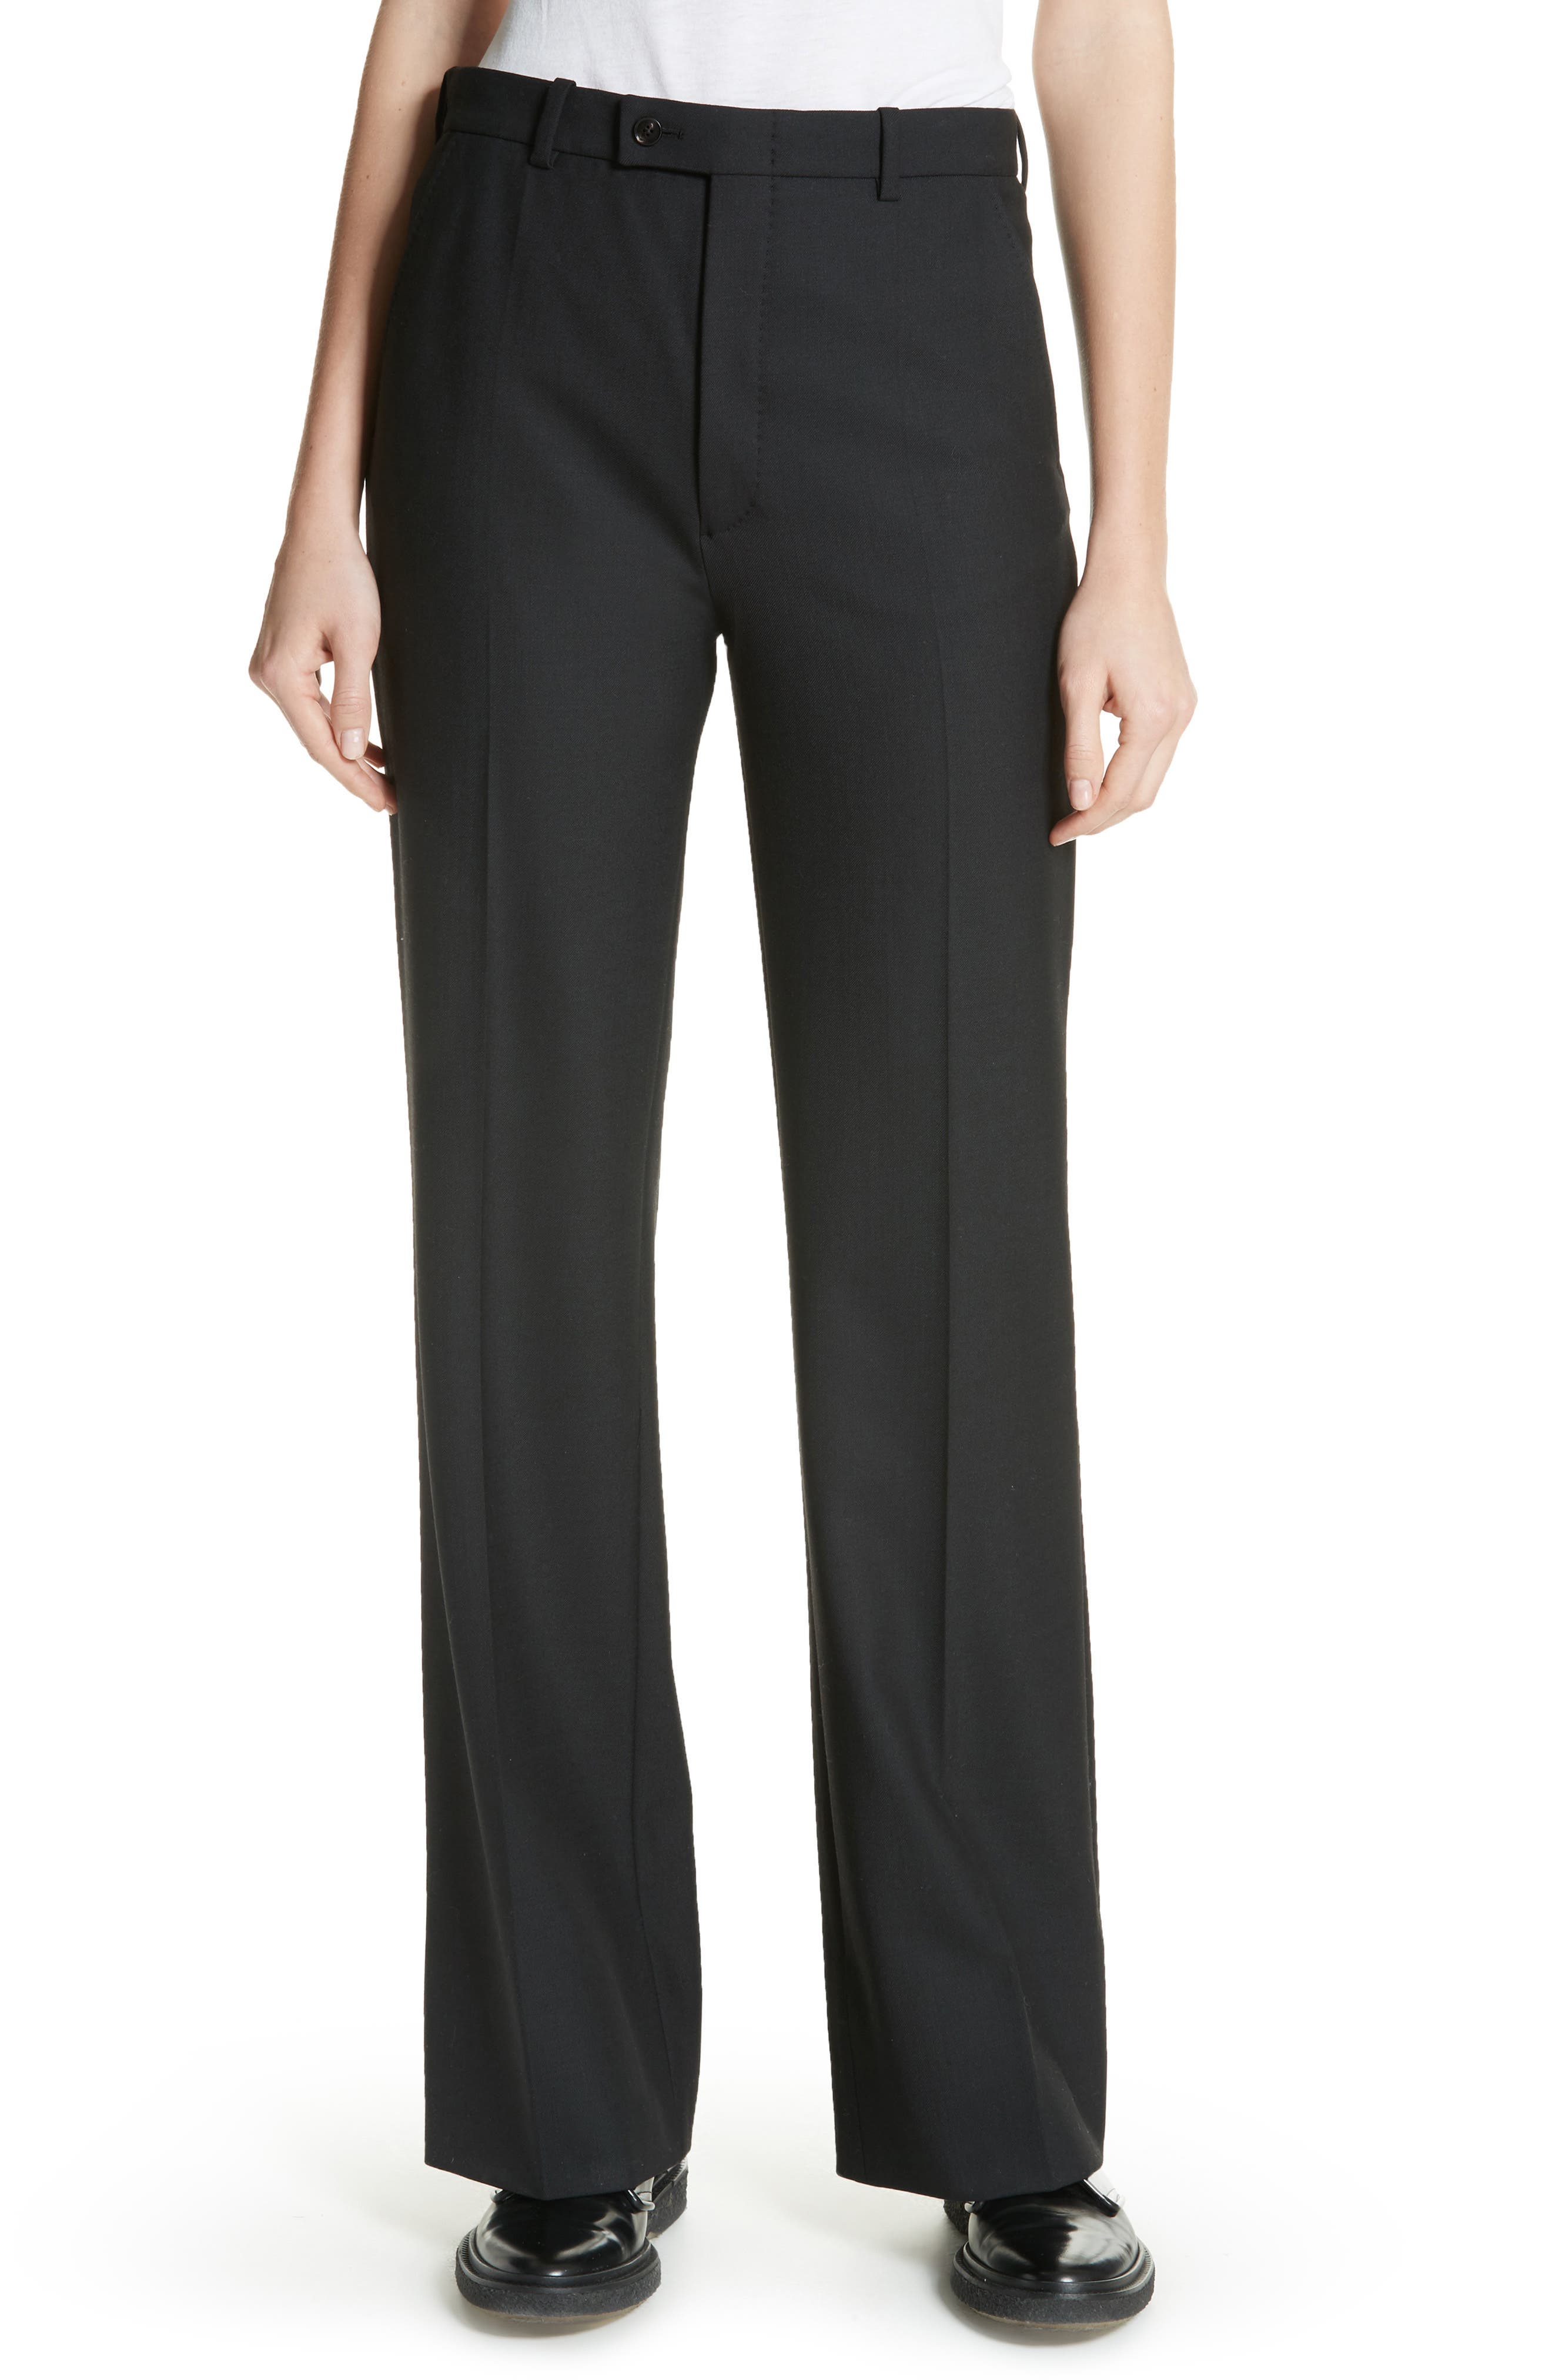 Tropez Wide Leg Trousers,                             Main thumbnail 1, color,                             Black